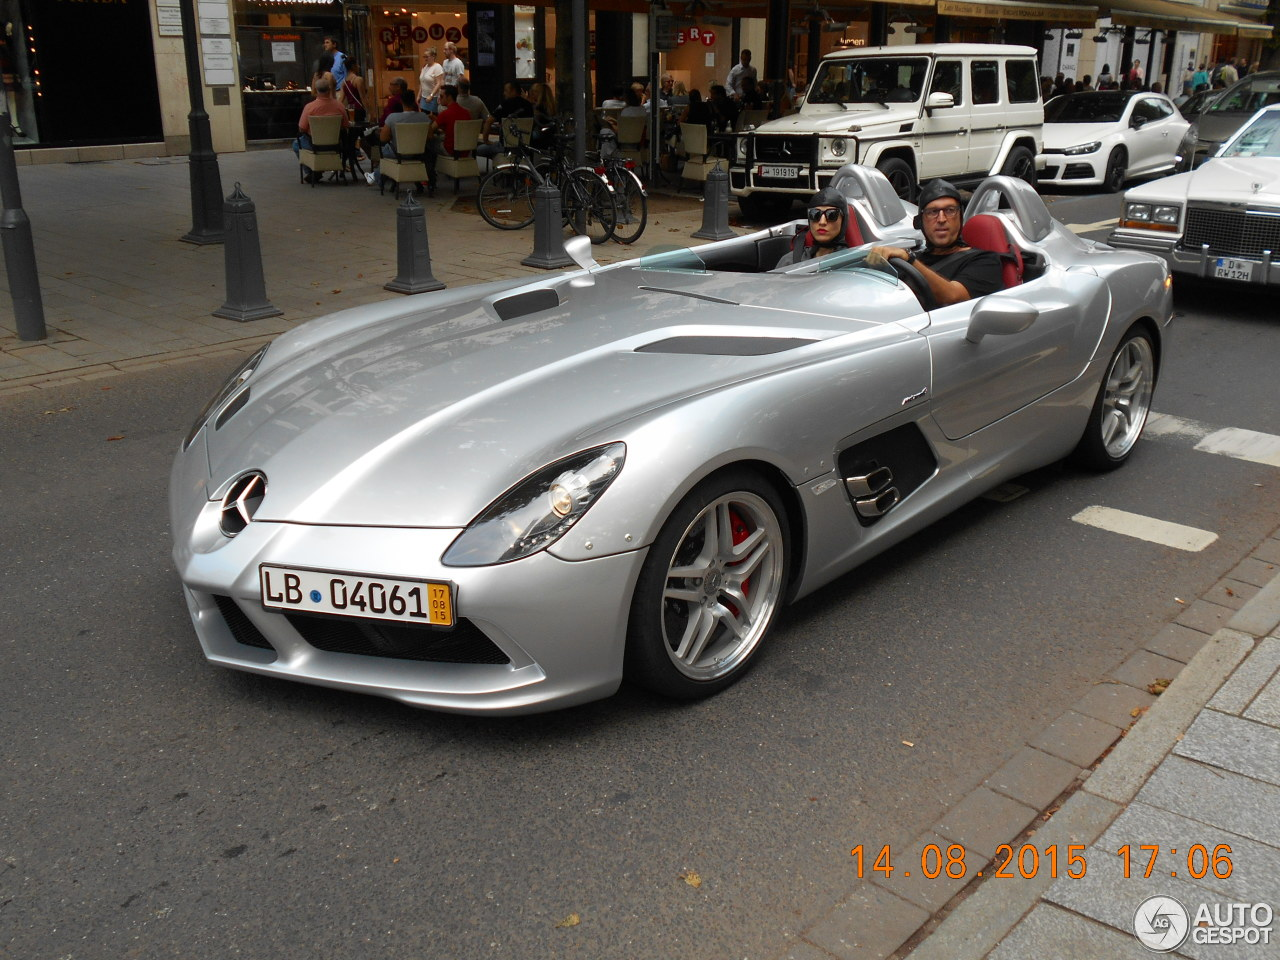 Mercedes benz slr mclaren stirling moss 15 august 2015 for Mercedes benz slr mclaren price